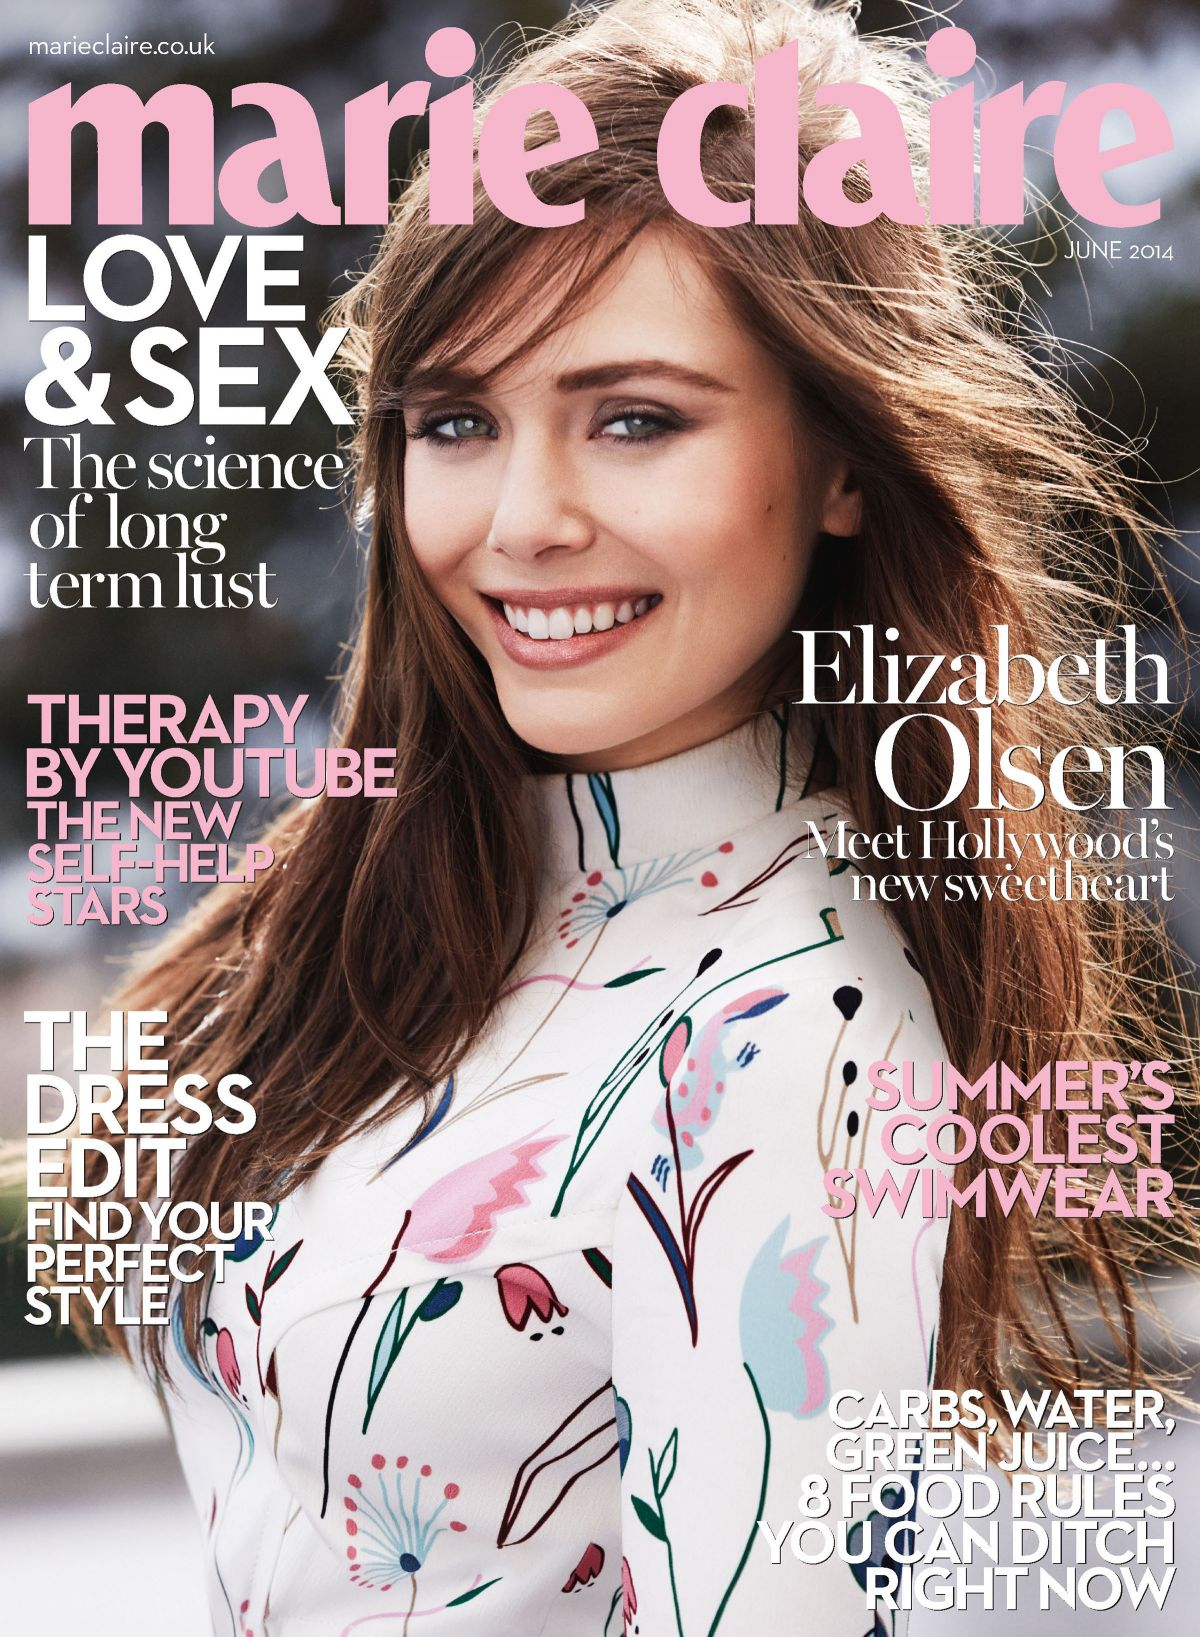 ELIZABETH OLSEN on the Cover of Marie Claire Magazine, June 2014 Issue